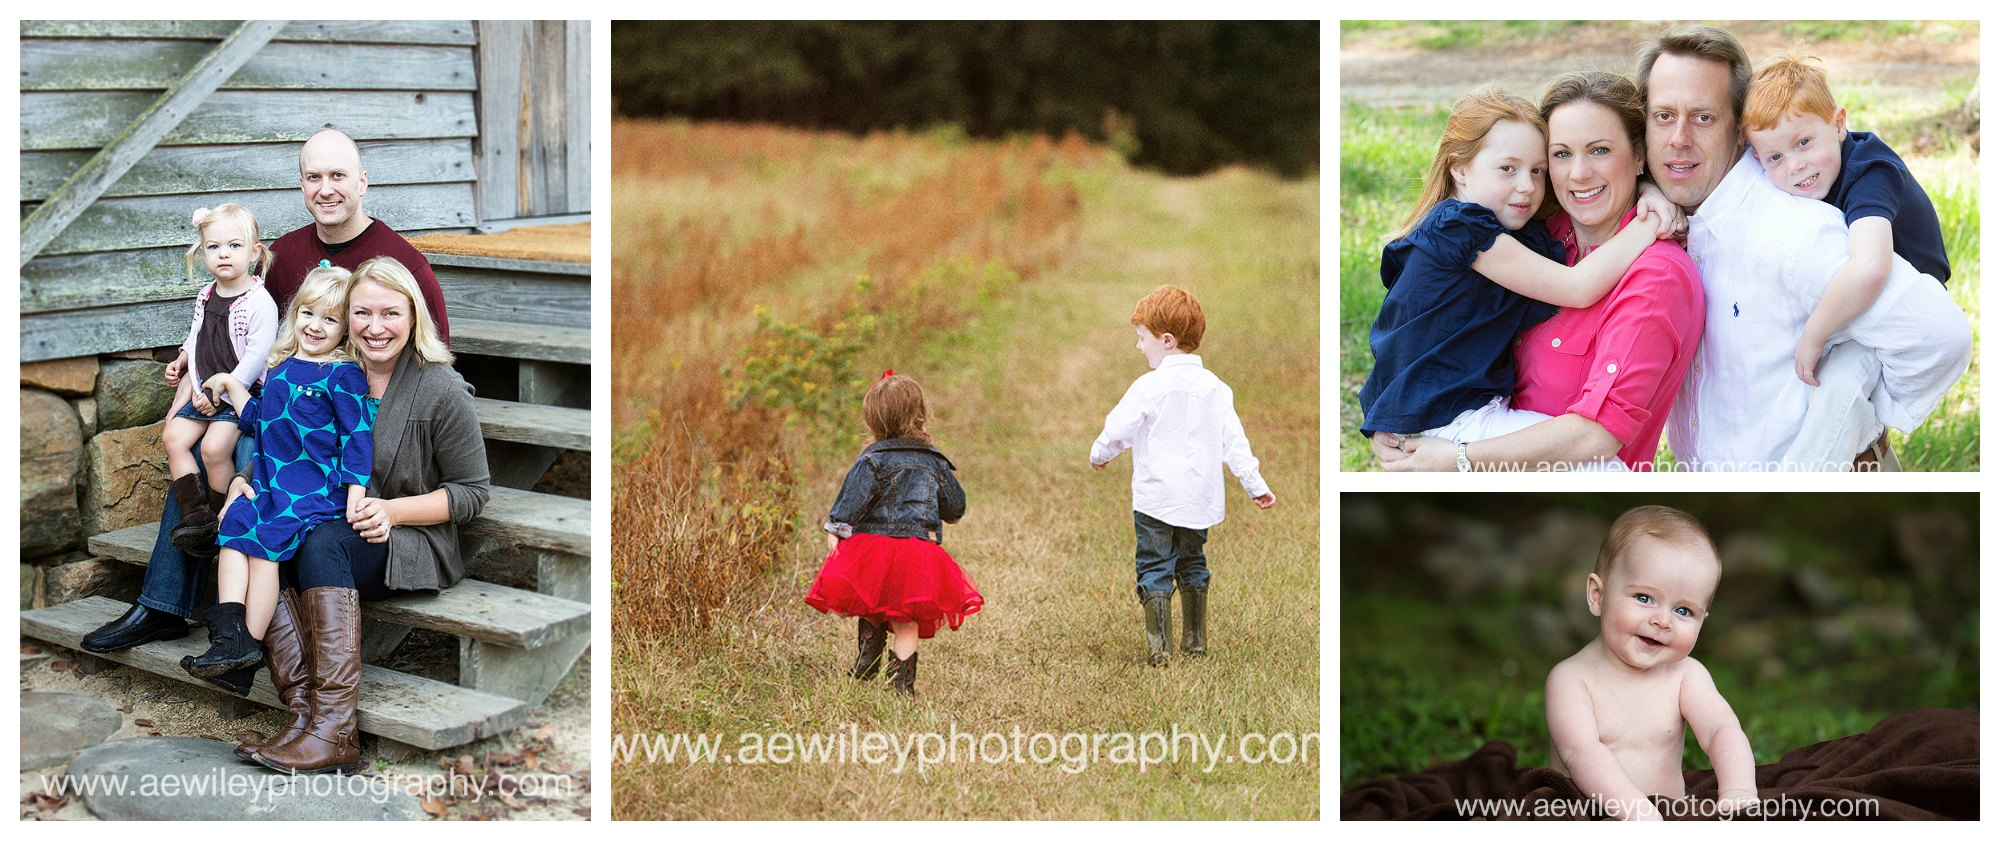 AE Wiley Photography. raleigh family photography